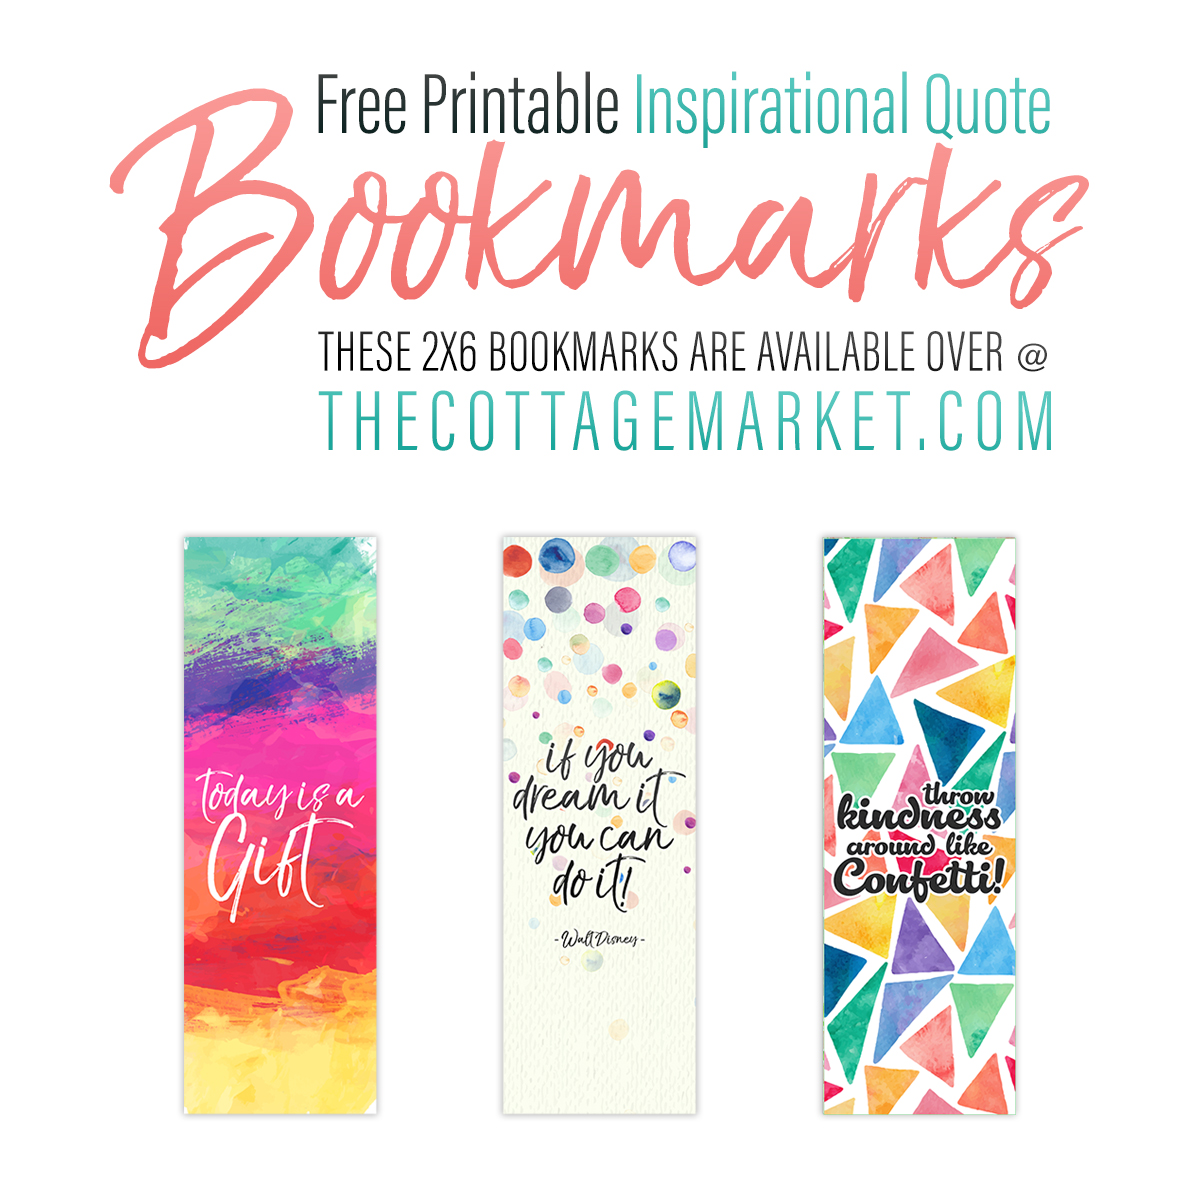 Free Printable Inspirational Quote Bookmarks The Cottage